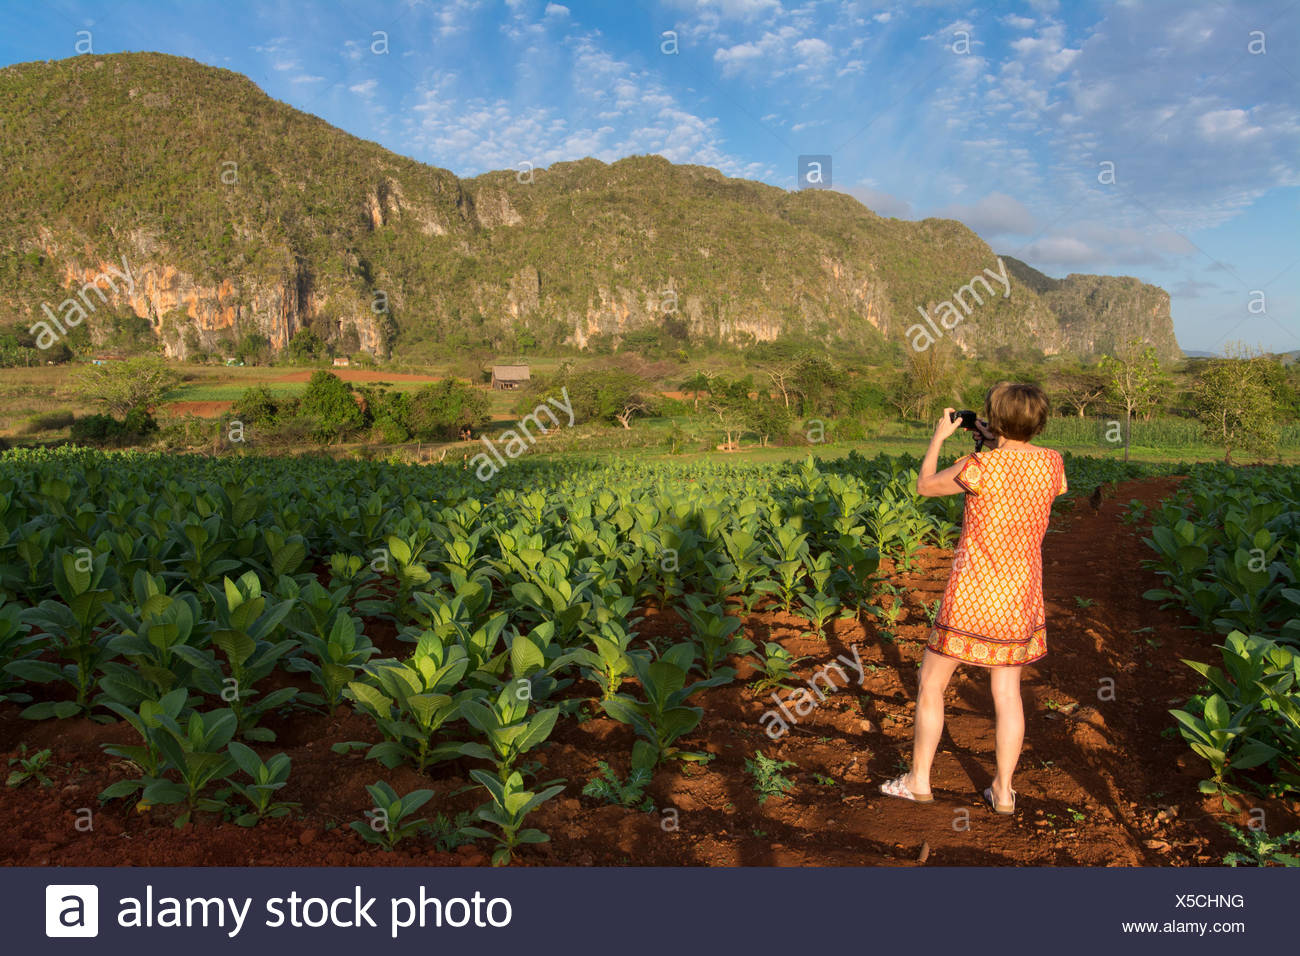 Traveller looks out to view  ripe tobacco plants and limestone cliffs,   Vinales, Cuba - Stock Image